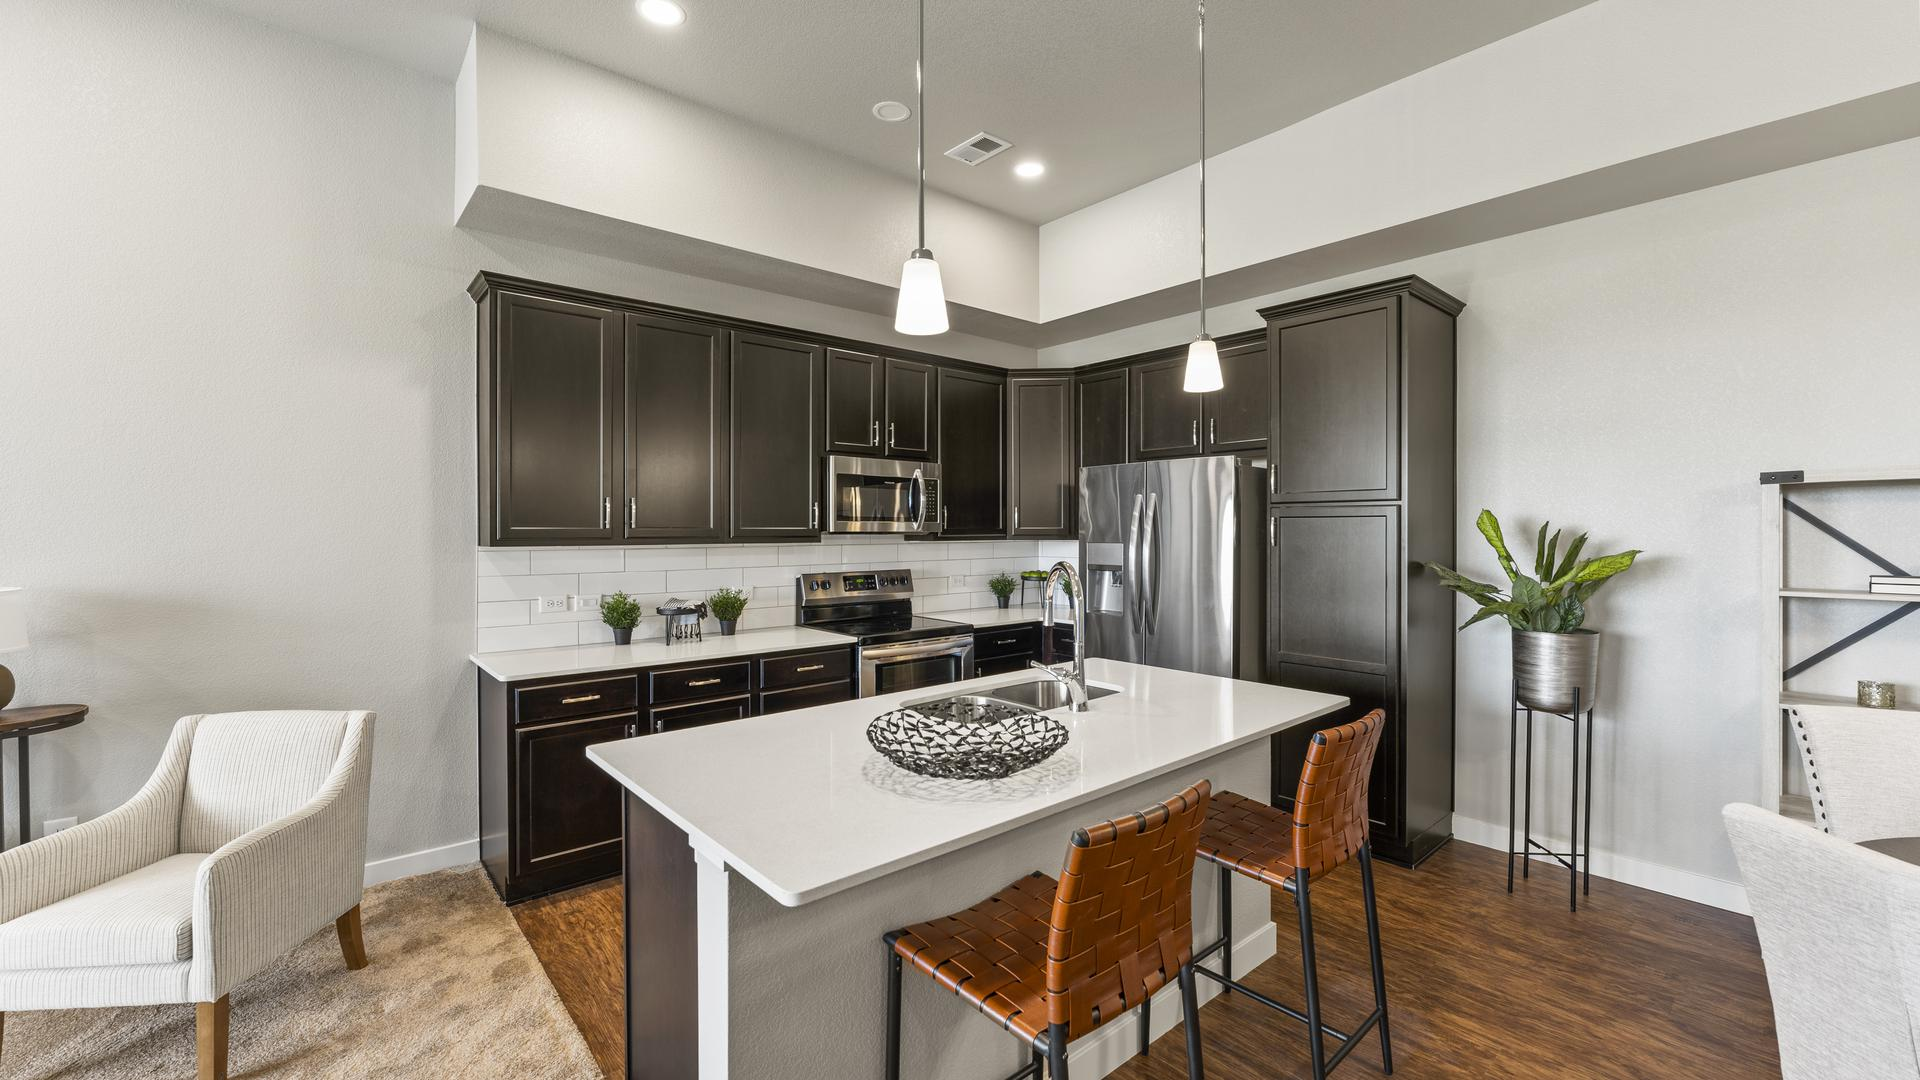 Kitchen - Not Actual Home - Finishes Will Vary . Monarch New Home Floor Plan